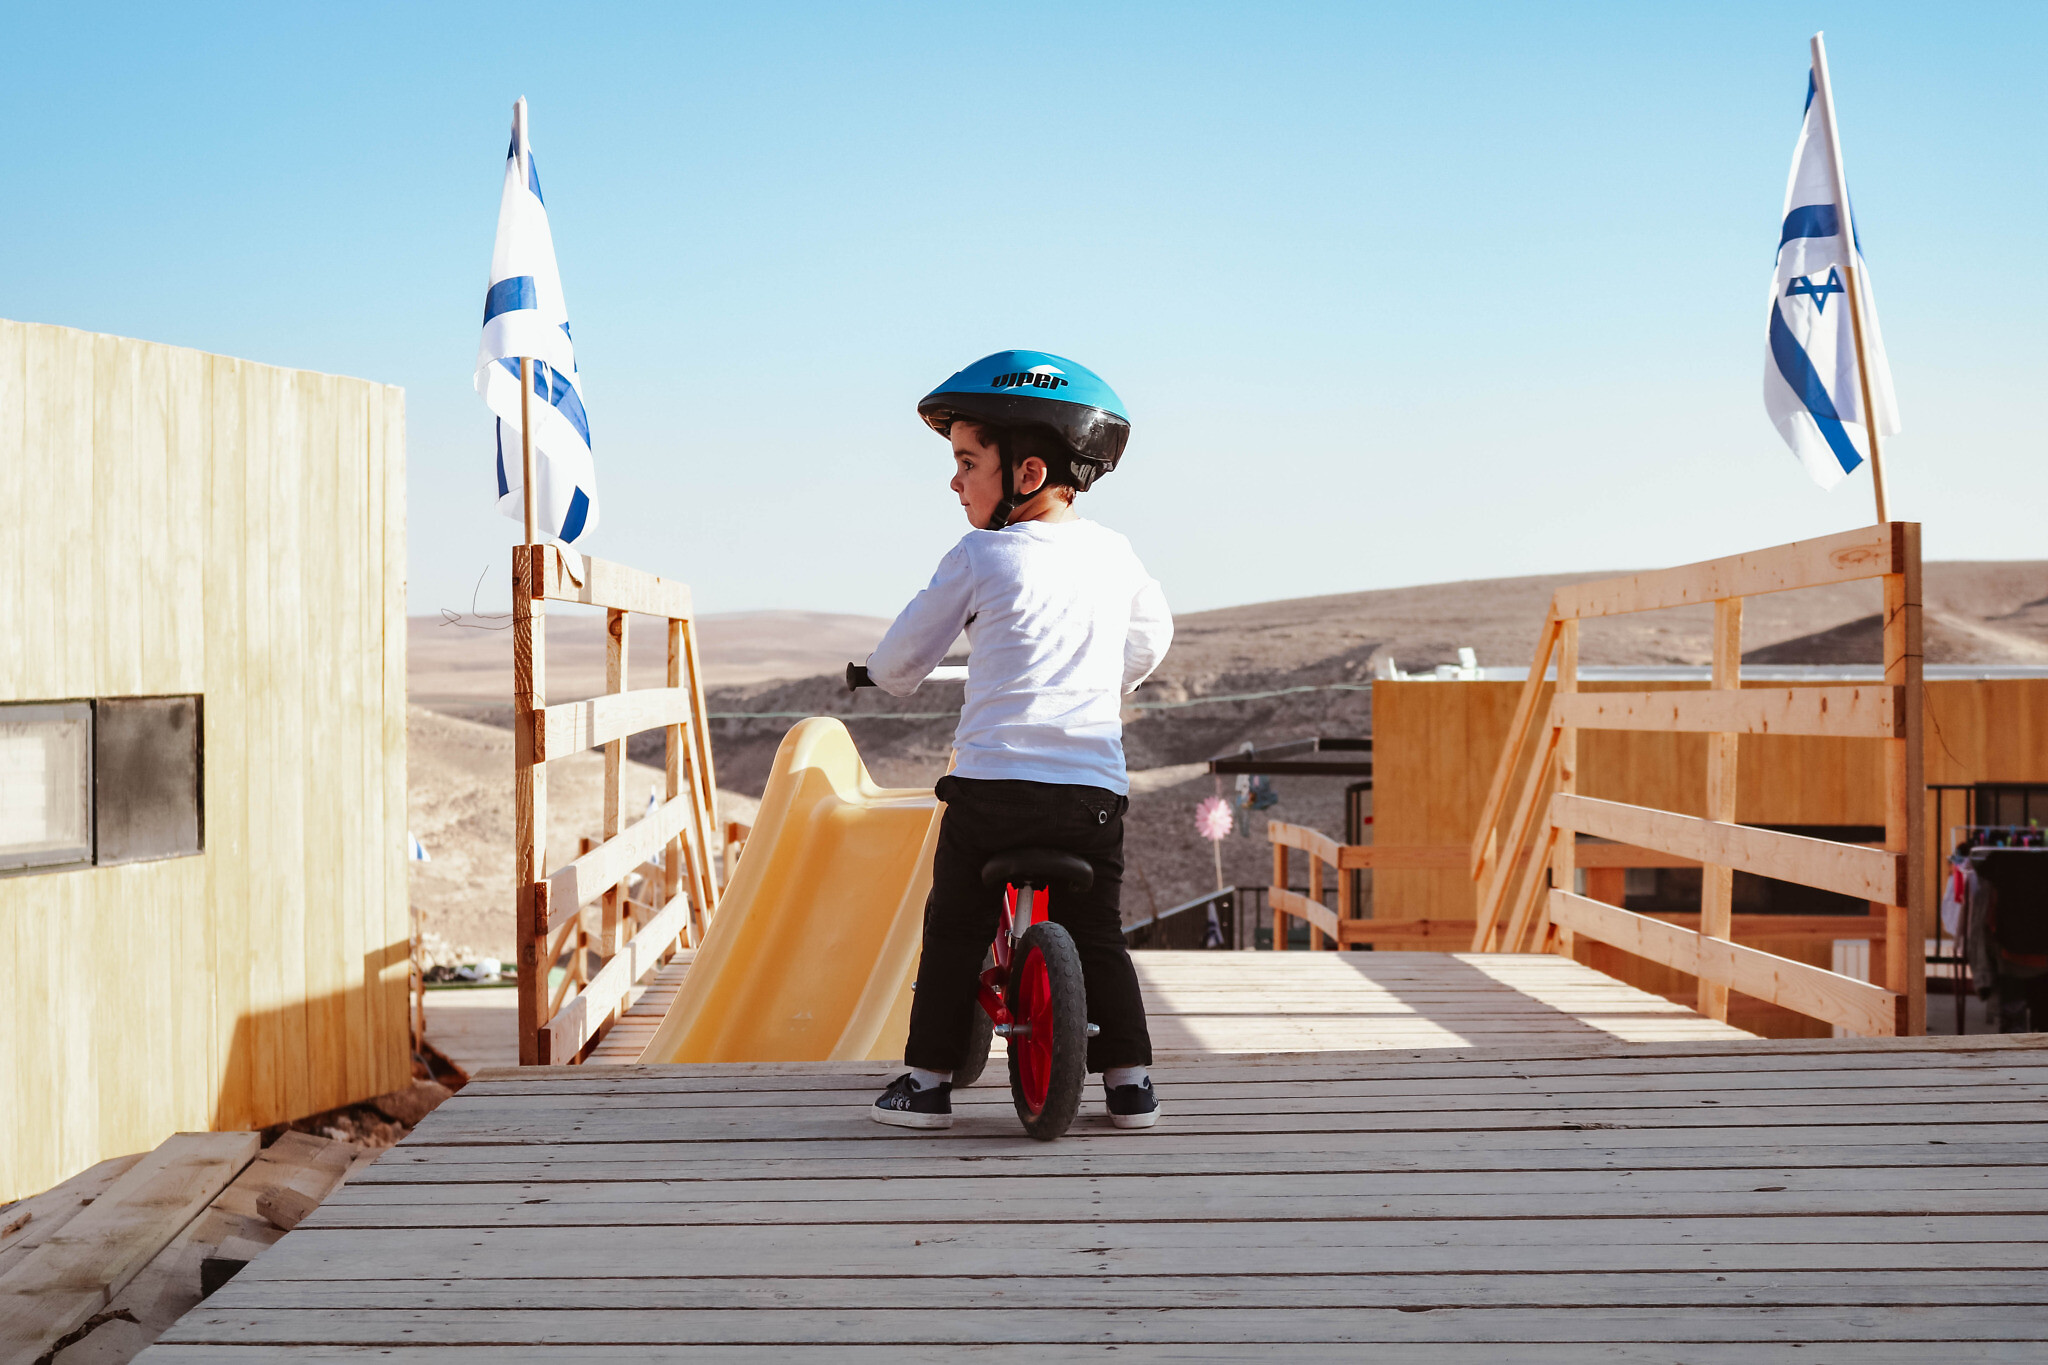 A younger resident of Shahak Heights enjoying his bike. (Shira Malul/via Ayalim)